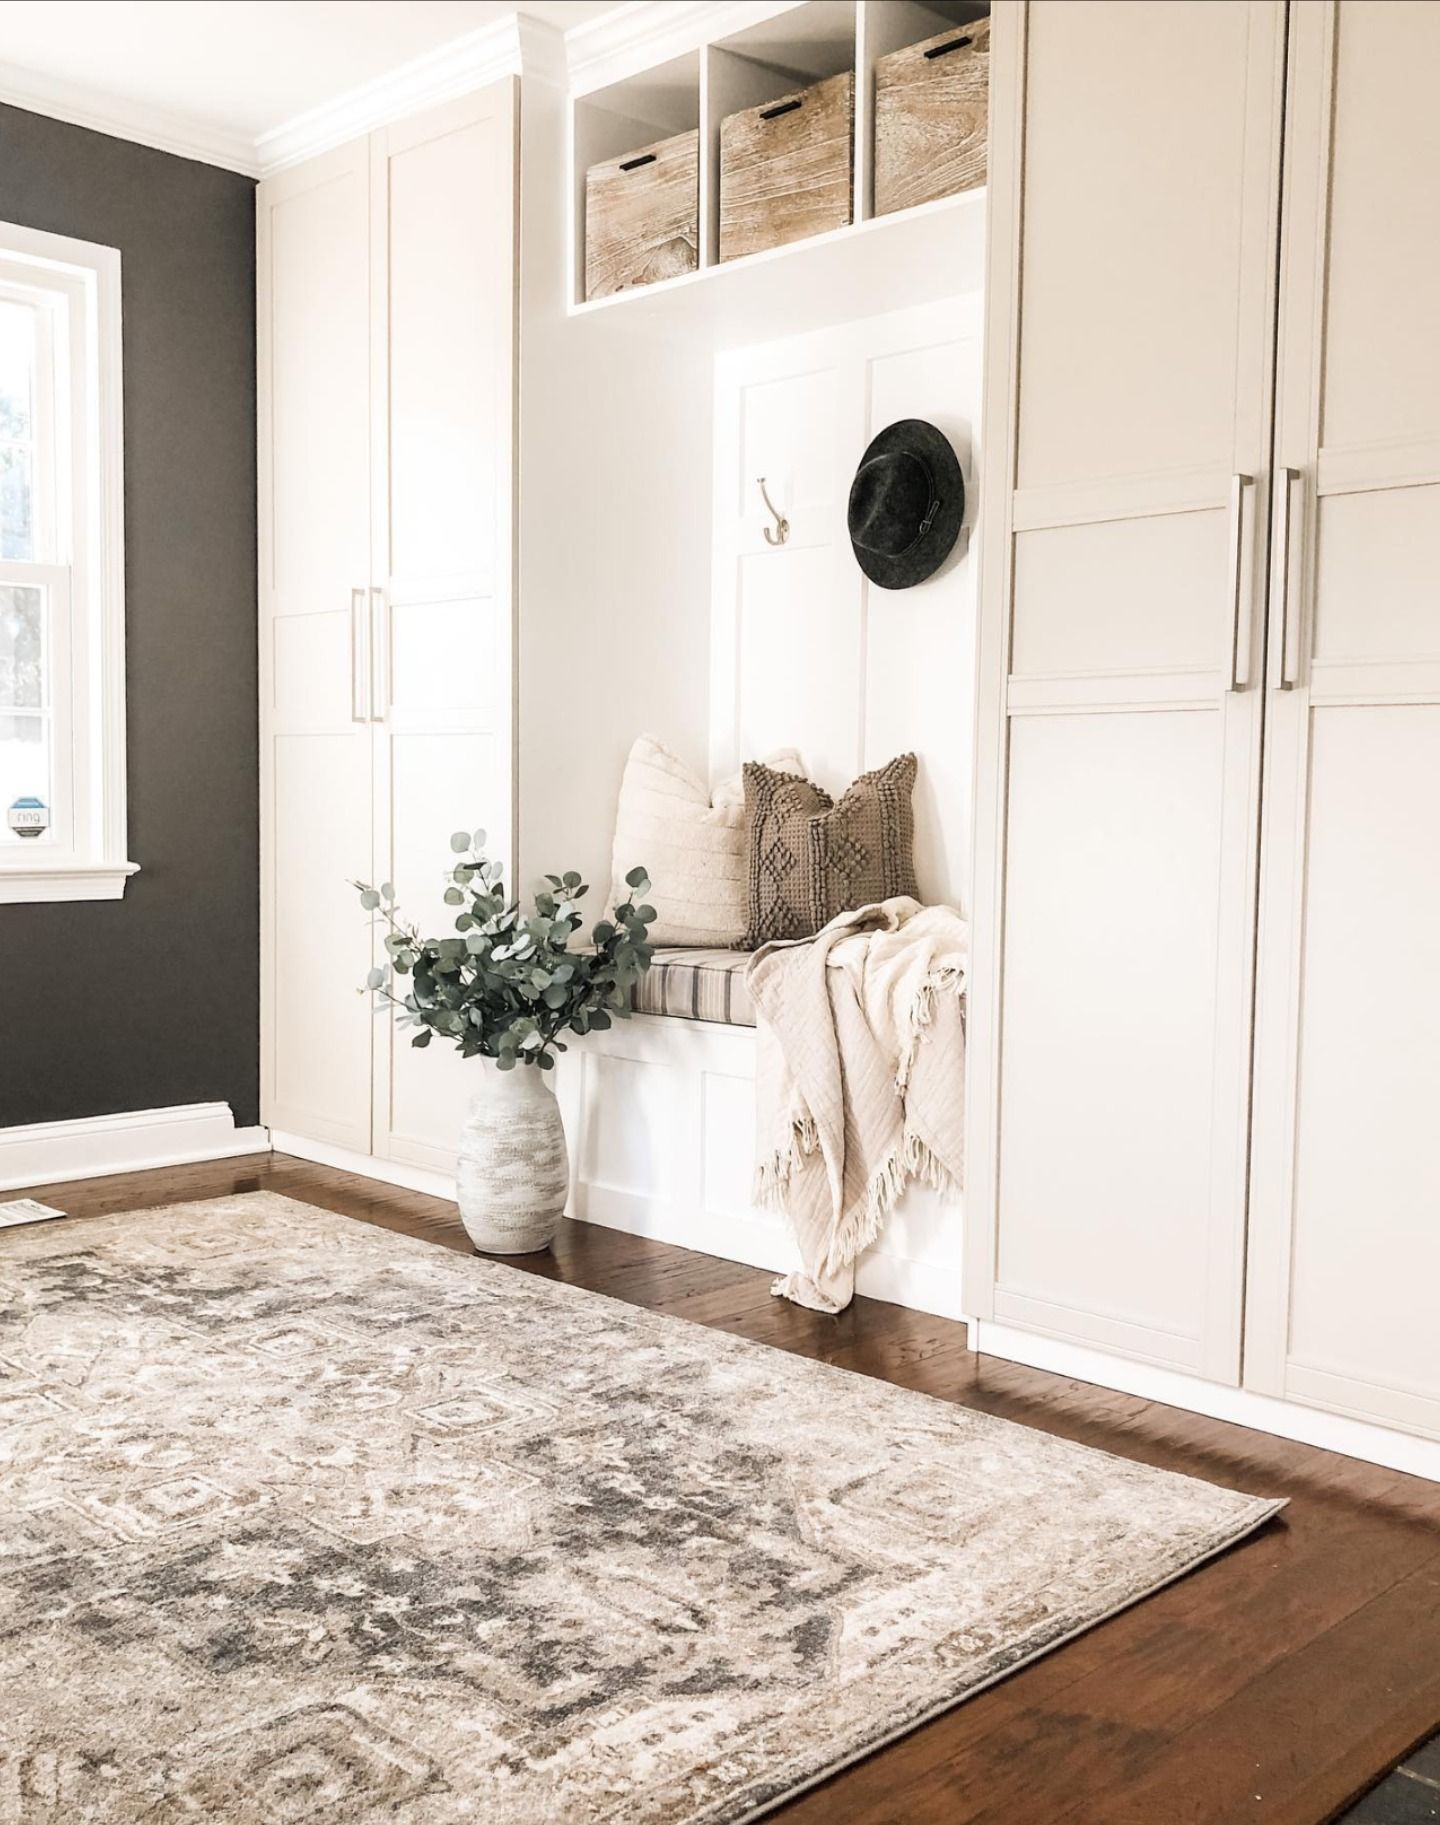 Home Decor Classy Sofia Area Rug #boutiquerugs #farmhousedecor #farmhousestyle #arearugs #modernfarmhouse #rugs #modernrugs #rusticdecor #rebuildingafterthefire #decorsteals #sale #fixerupperinspired #farmhouselivingroom #bedroom #fixerupperstyle #livingroom #pillows #pouf #modernlivingroom #homedecor #homedesign #diningroom #diningroomdecor #diningroomdesign #bedroomideas #bedroomdecor #bedroomdesign #bathroom #entryway.Home Decor Classy  Sofia Area Rug #boutiquerugs #farmhousedecor #farmhouses